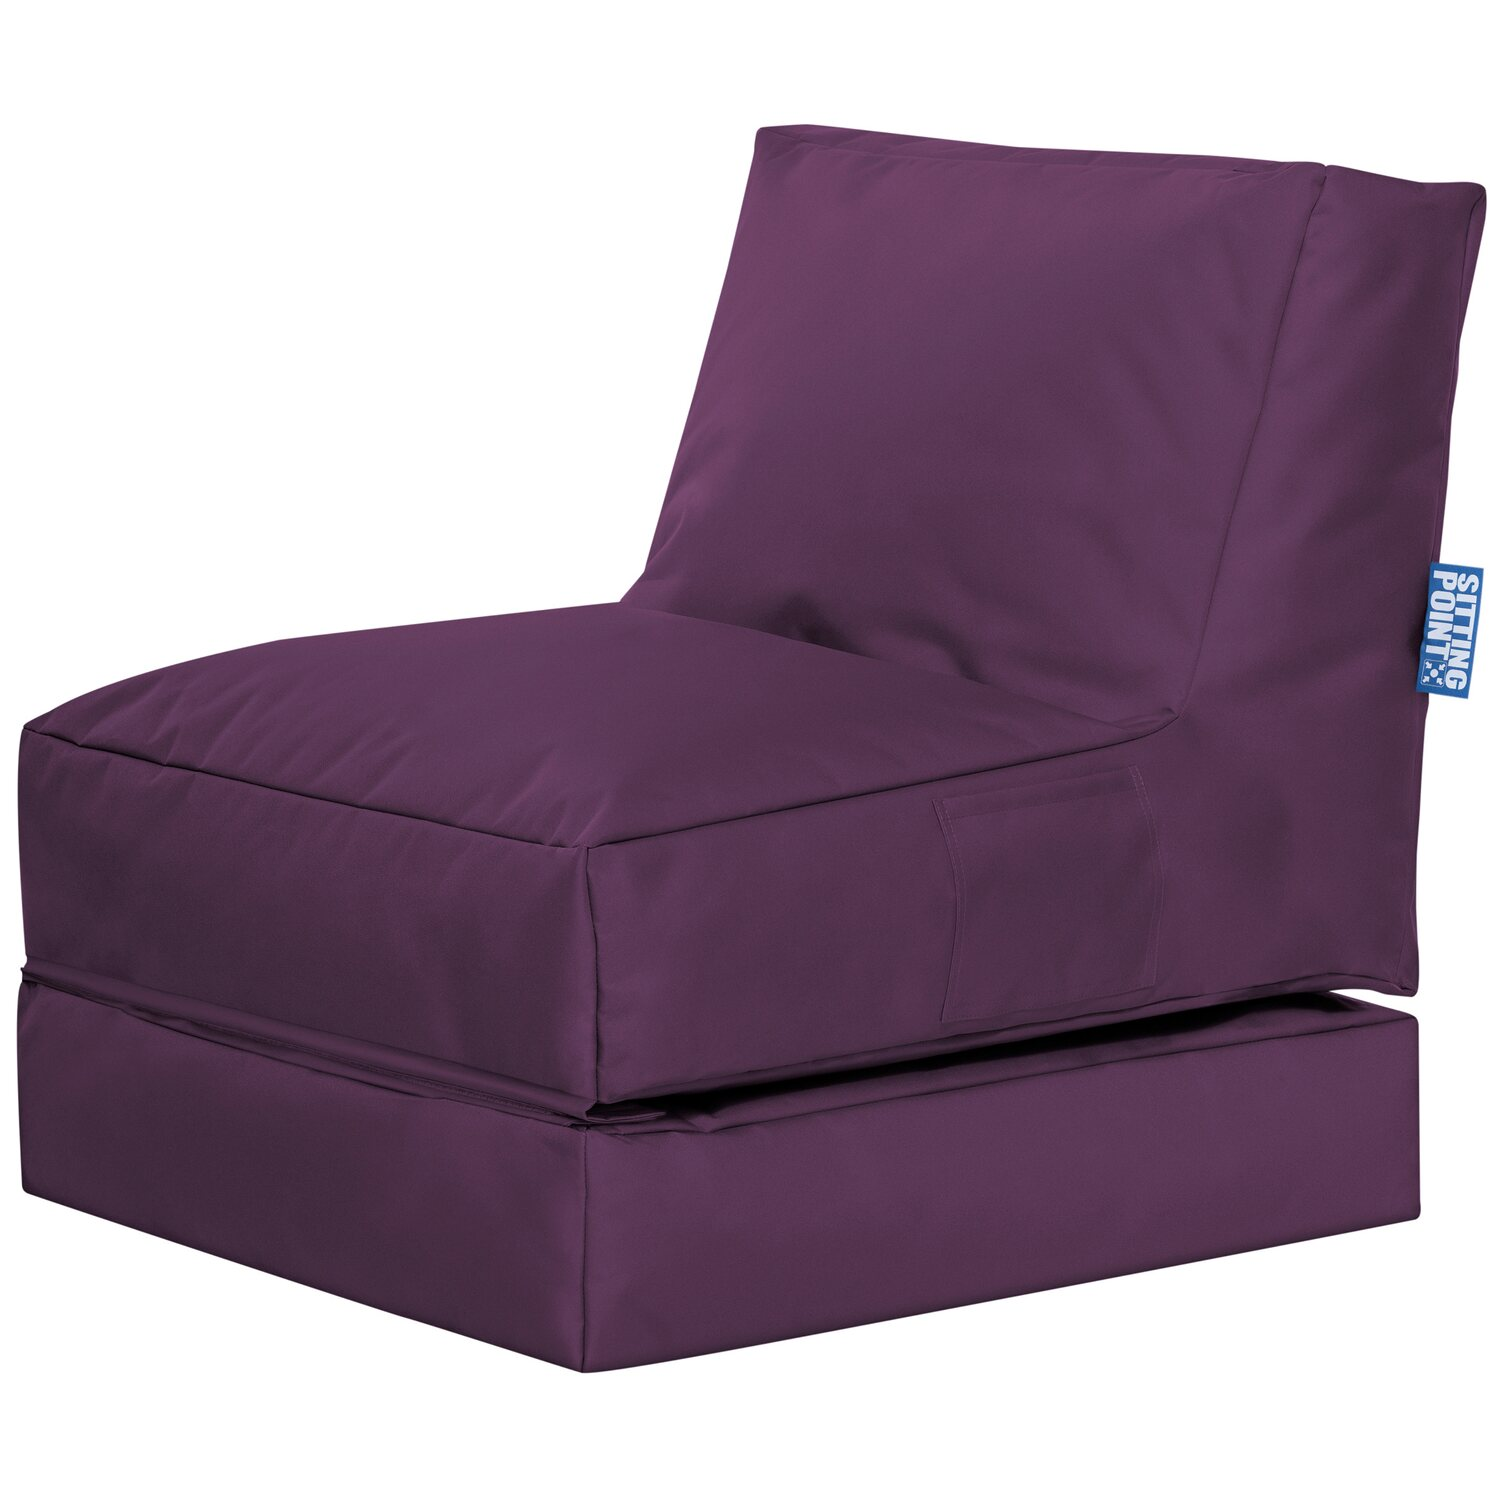 sitting point sitzsack twist scuba aubergine kaufen bei obi. Black Bedroom Furniture Sets. Home Design Ideas